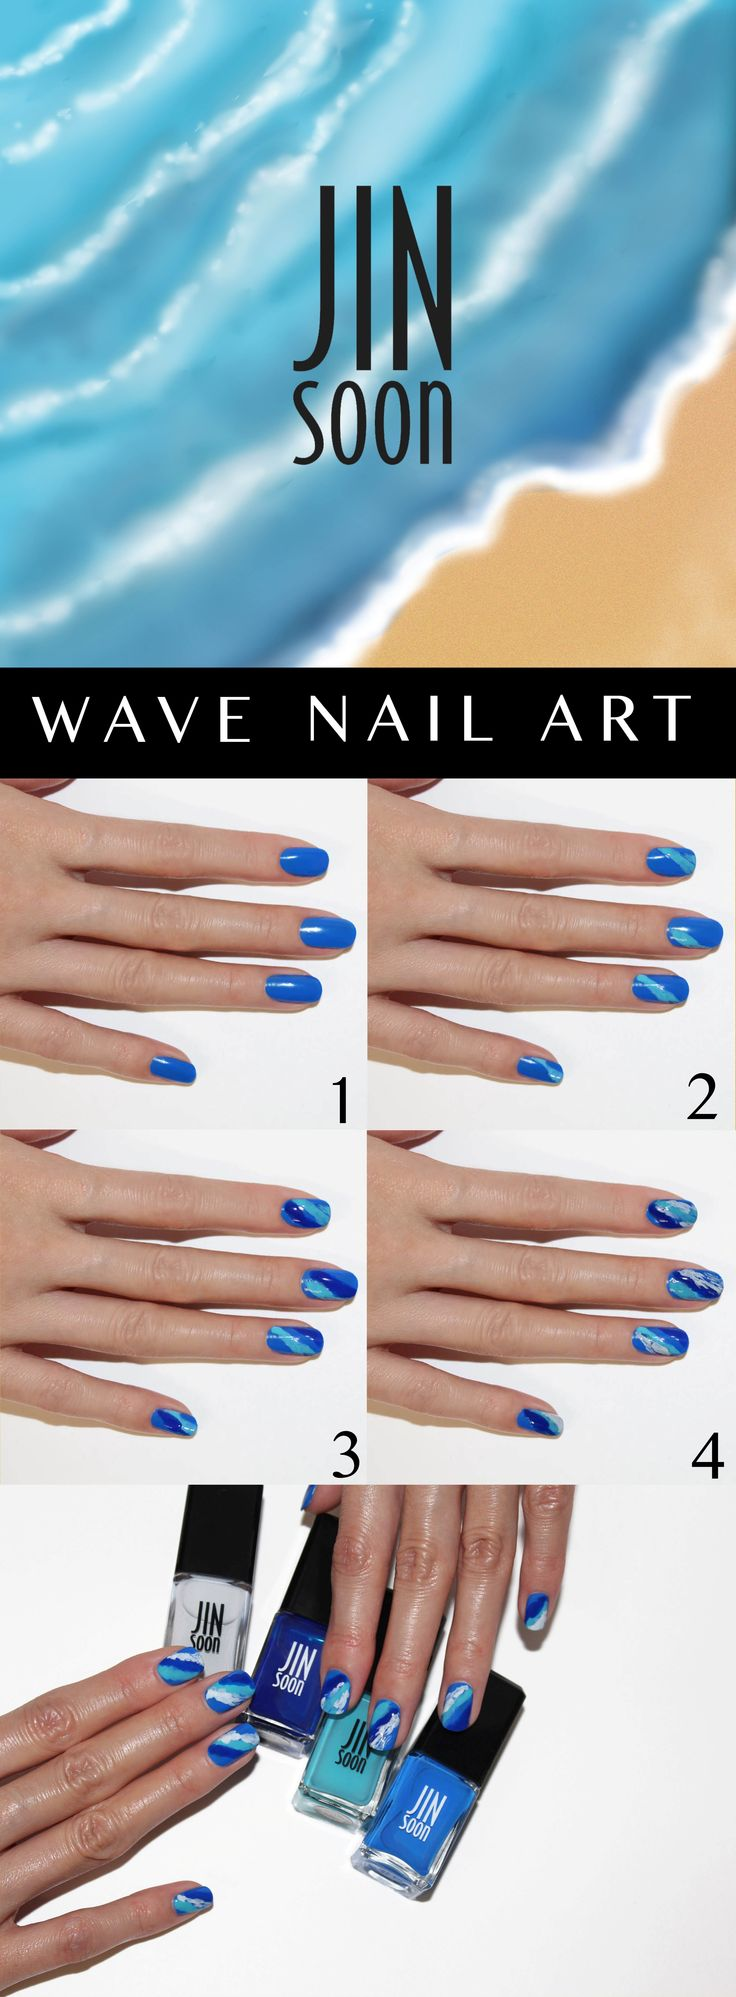 Learn how to get The Wave Nail Art from @JINsoonOfficial Step 1: Apply Power Coat Step 2: Apply Cool Blue over the entire nail Step 3: Apply Poppy Blue diagonally across the nail in the irregular stroke Step 4: Apply Blue Iris diagonally across the nail next to poppy blue overlapping a part of it in an irregular shape Step 5: Apply Kookie White in uneven strokes, diagonally across the nails. Step 6: Apply Top Gloss over the entire nail to finish the look! #Sephora #howto #nails #nailart…